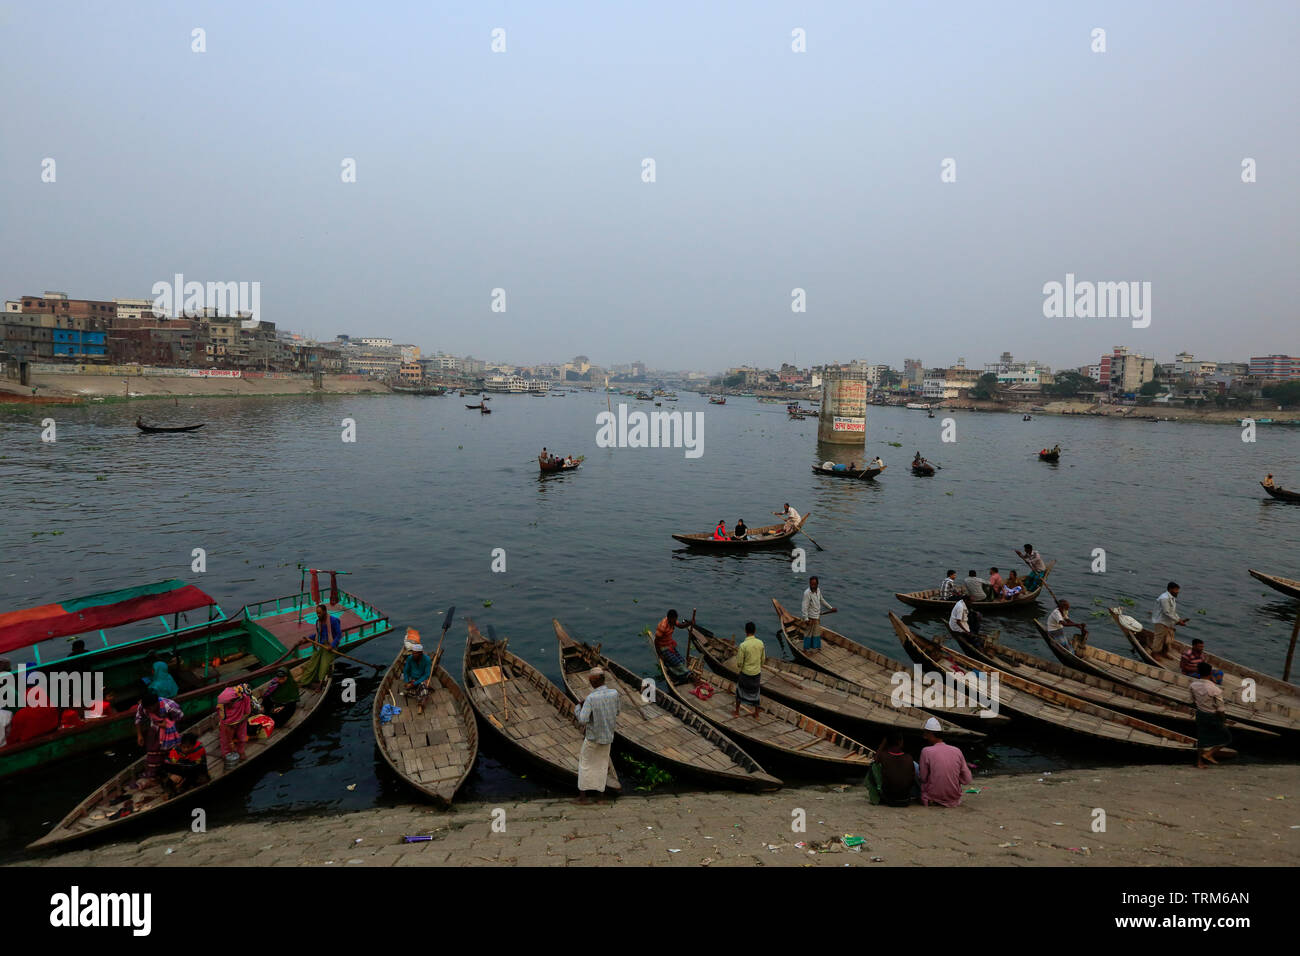 Ferry boats on the Buriganga River. Dhaka, bangladesh - Stock Image